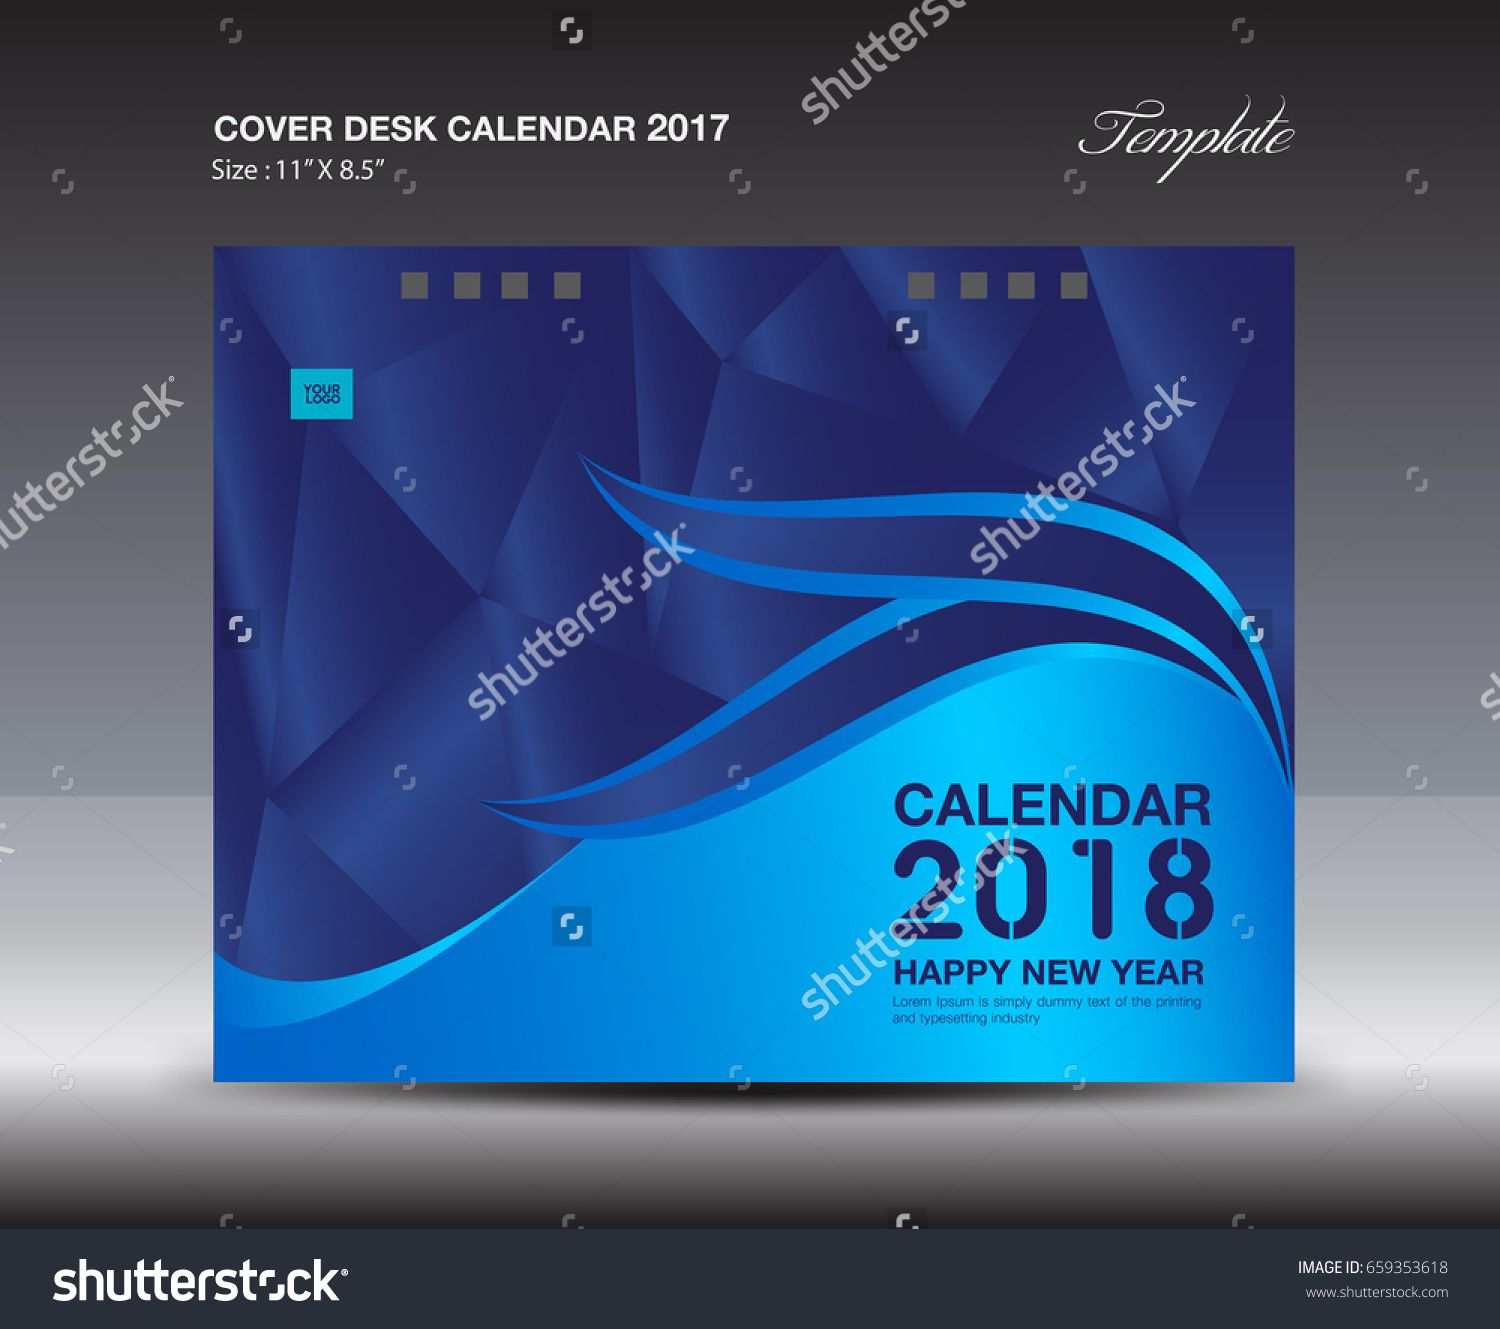 Calendar Cover 2018 : Blue cover desk calendar design template polygon